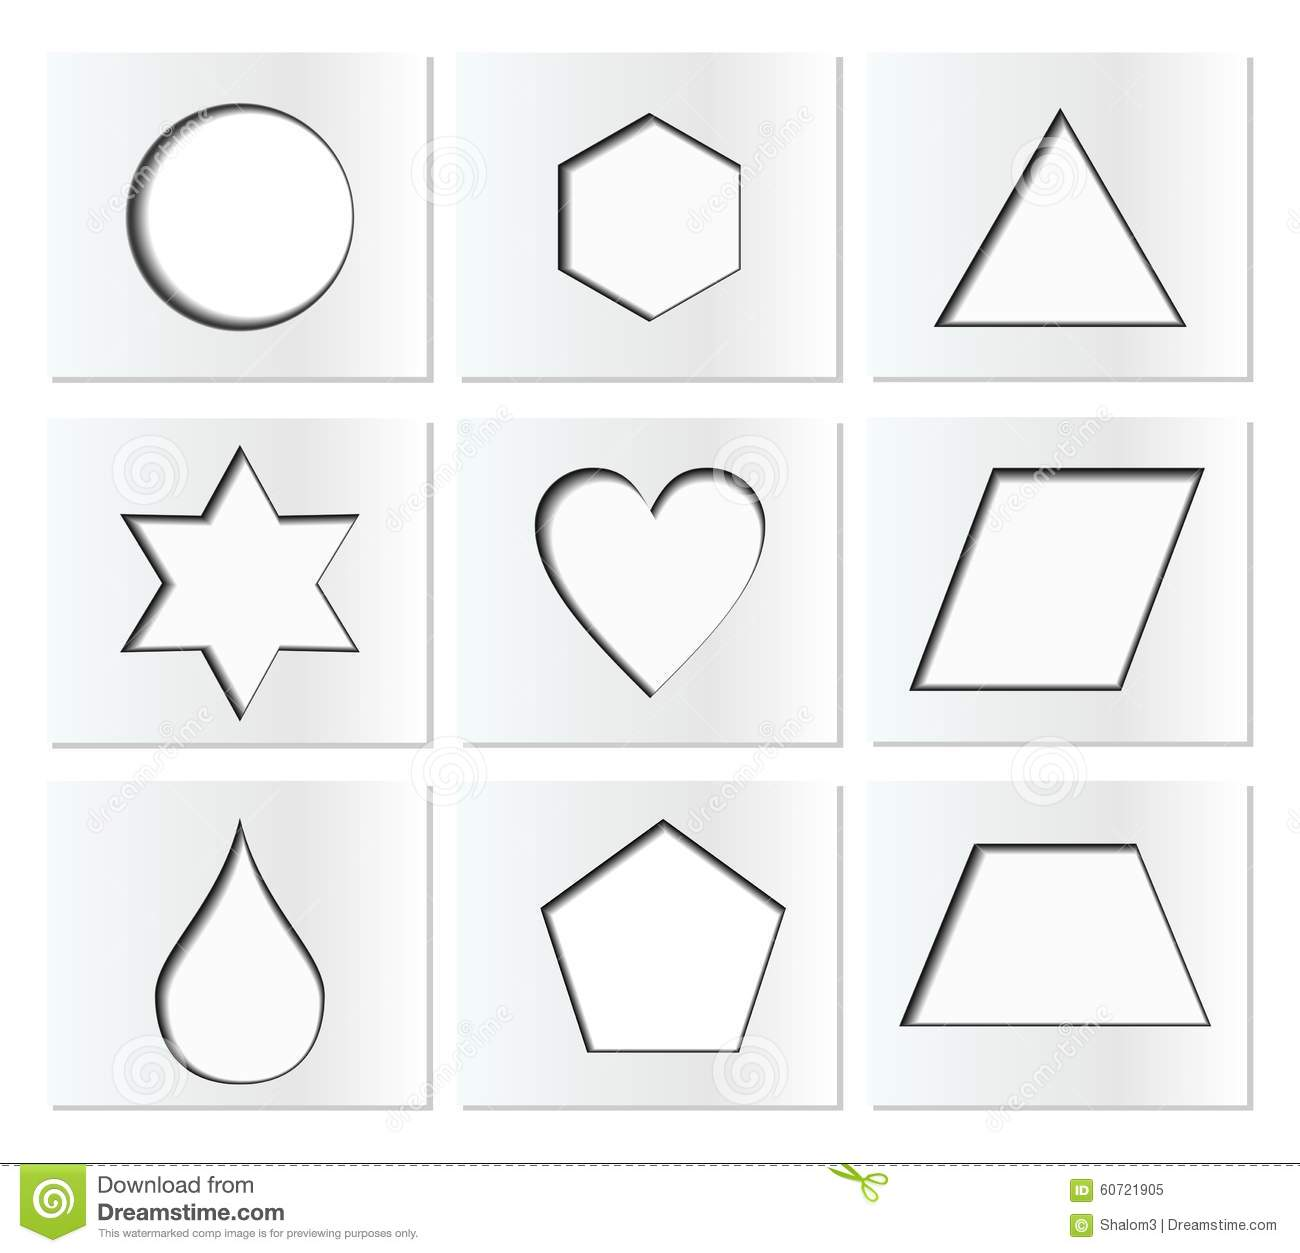 hight resolution of template for simple geometric shapes with inner shadow circle hexagon triangle star